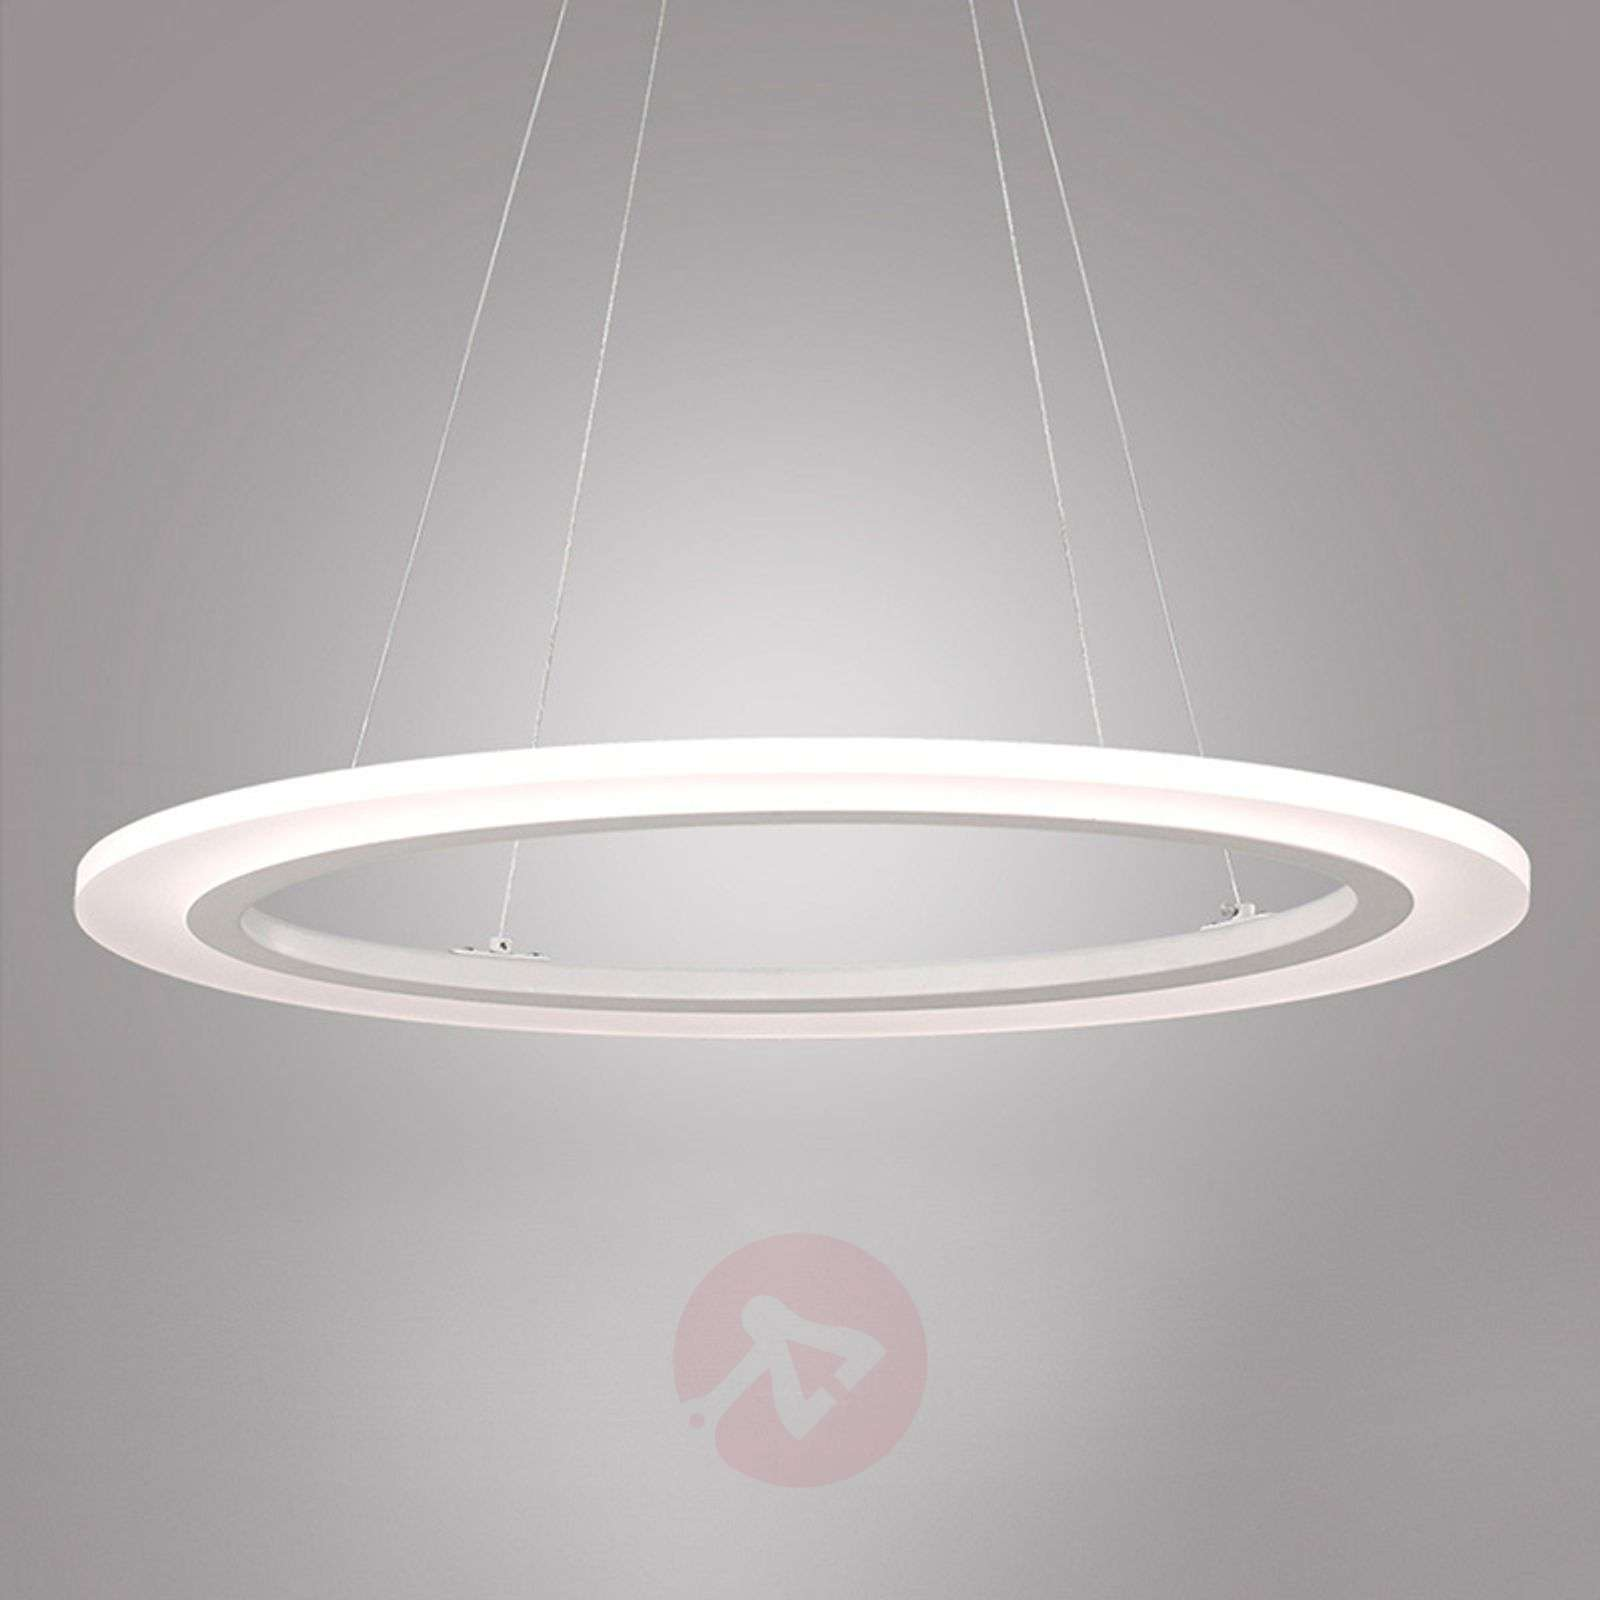 65 cm Oval LED hanging light Greta-1050102-01